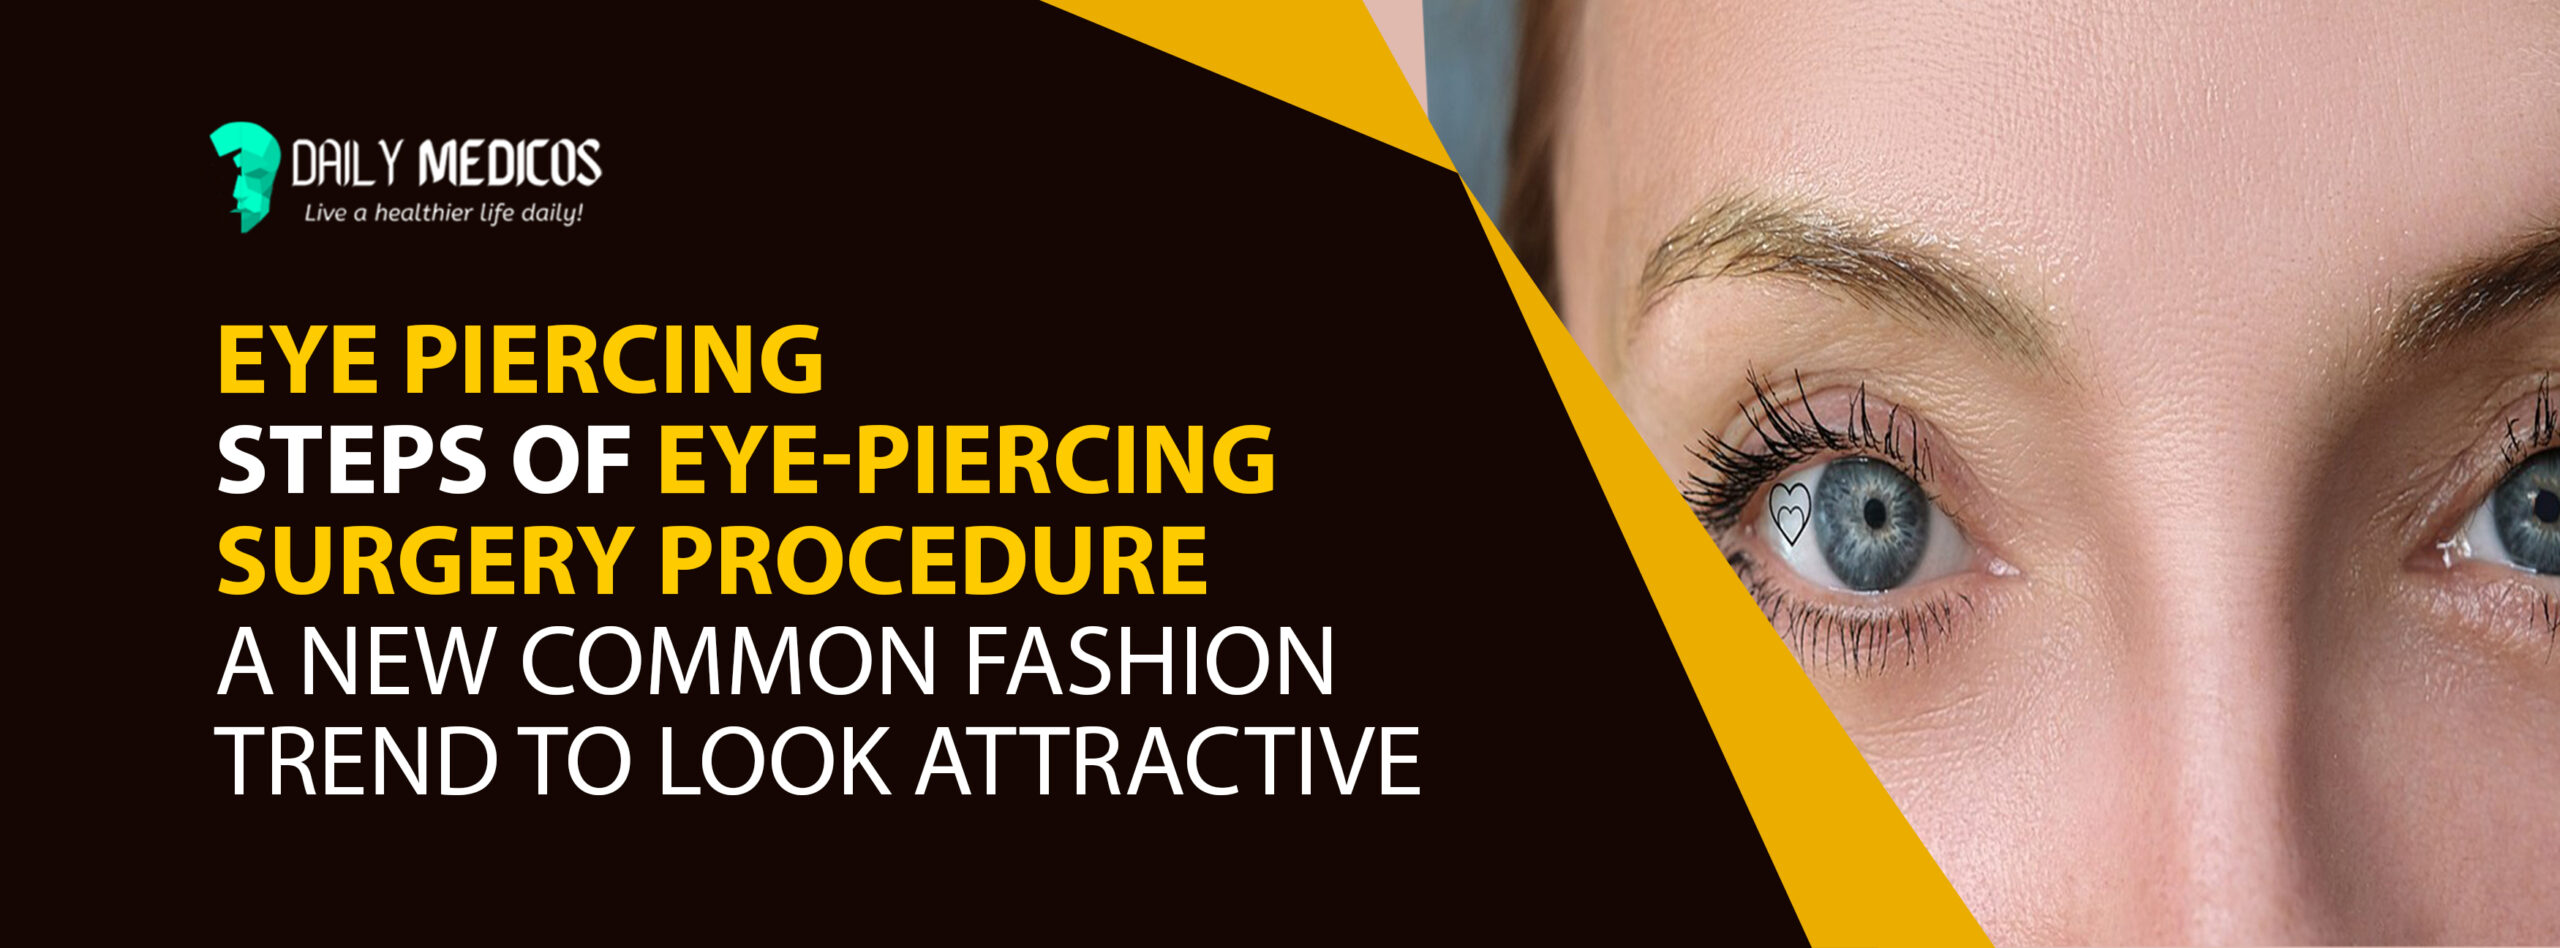 Eye Piercing: Steps of Eye-piercing Surgery Procedure [A new common fashion trend to look attractive] 1 - Daily Medicos